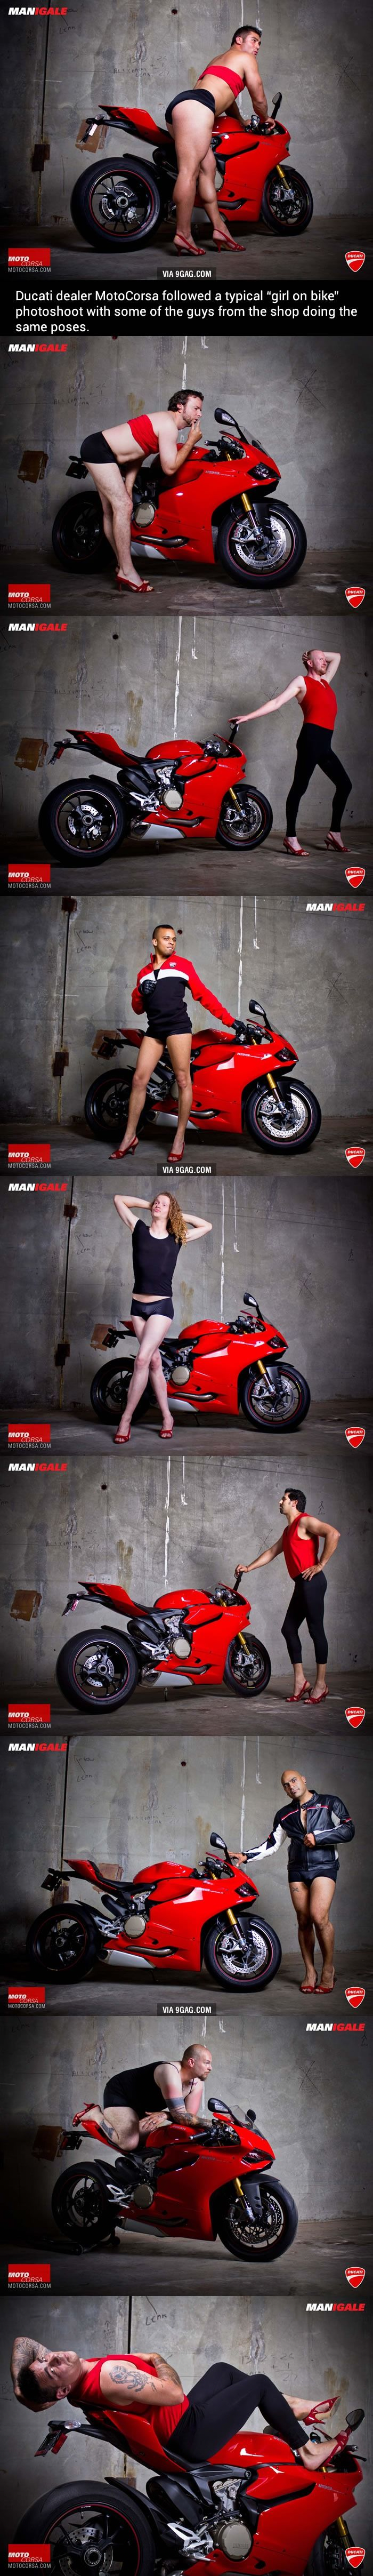 Thank you Ducati - If you saw a woman in any of these ads you wouldn't take a second look at how ridiculous this really is...